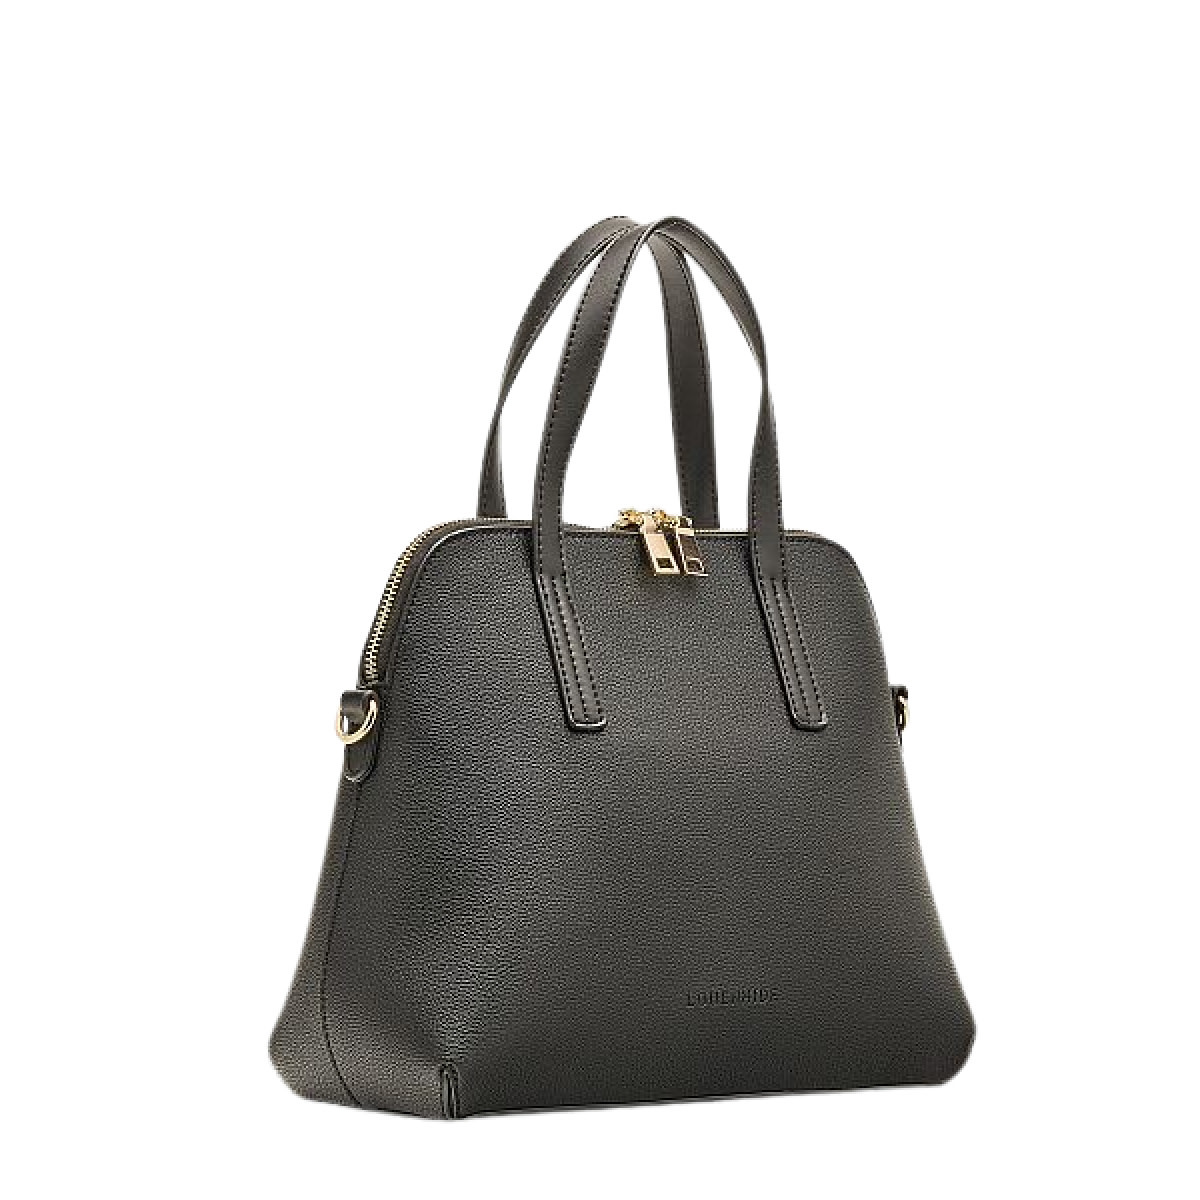 Lounenhide Candice Handbag Black